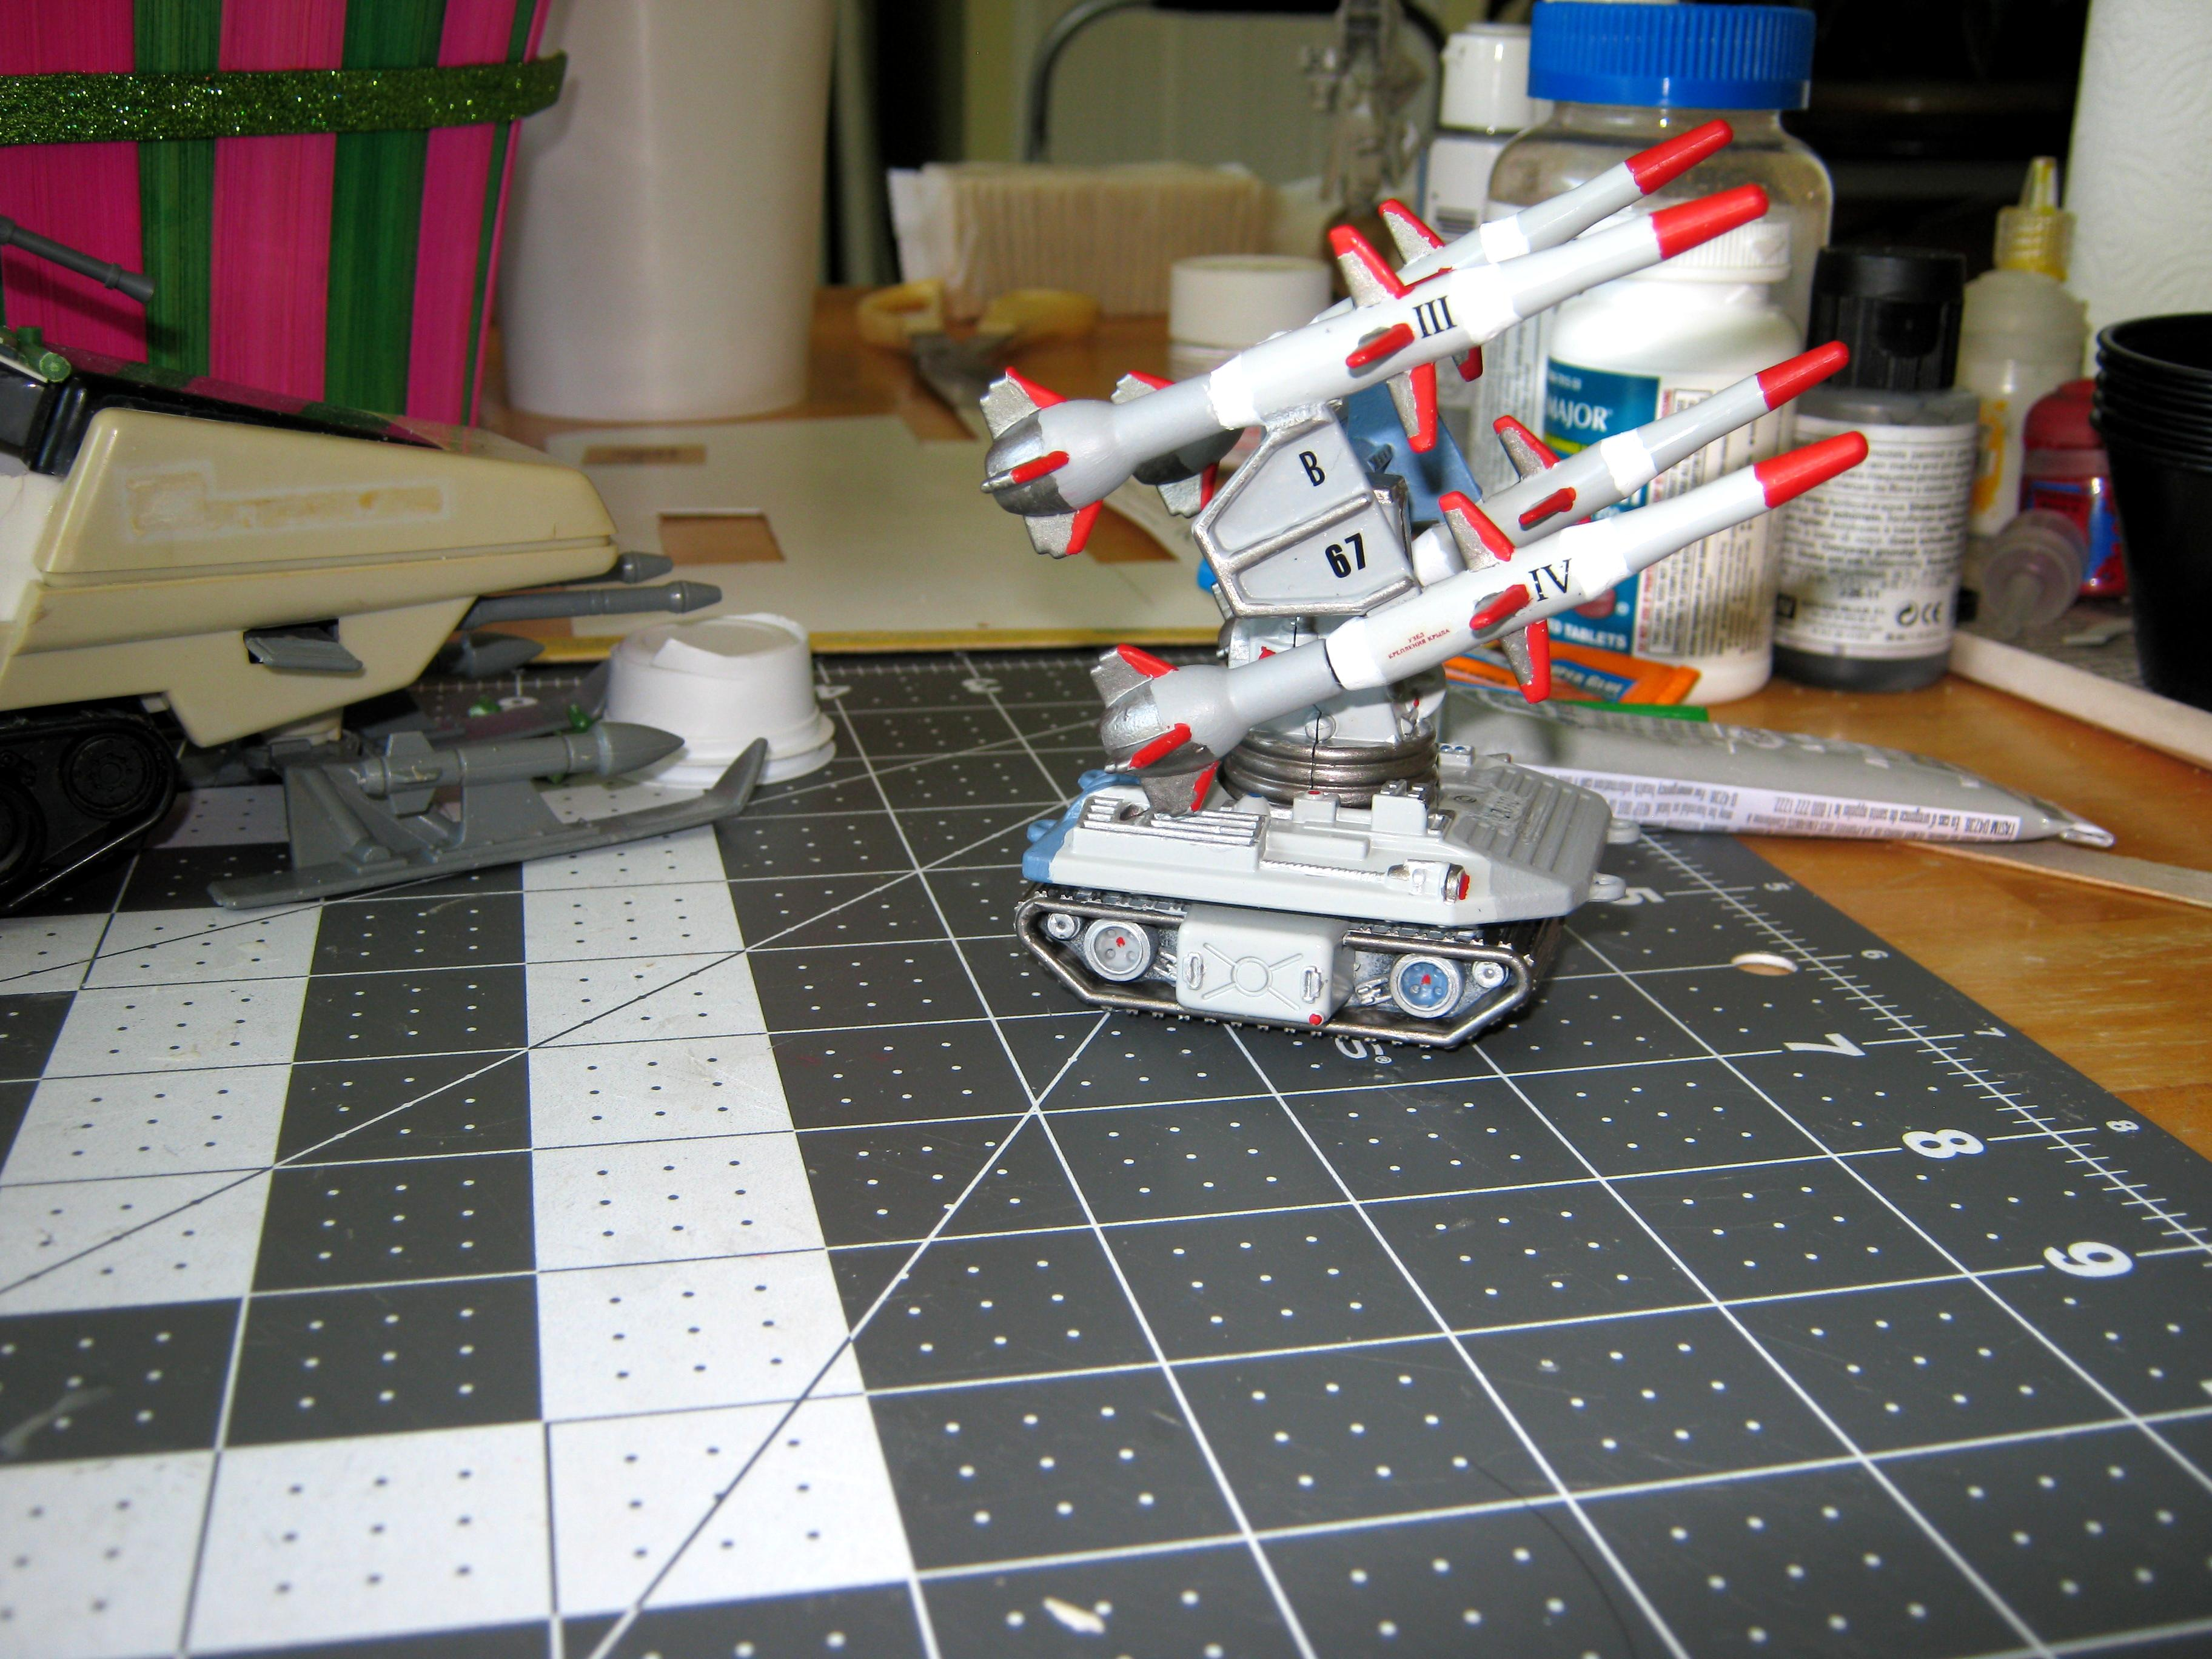 Artillery, Automata, Conversion, Drone, G.i. Joe, Imperial, Missile Launcher, Pac/rat, Remote Weapons System, Self-propelled, Toy